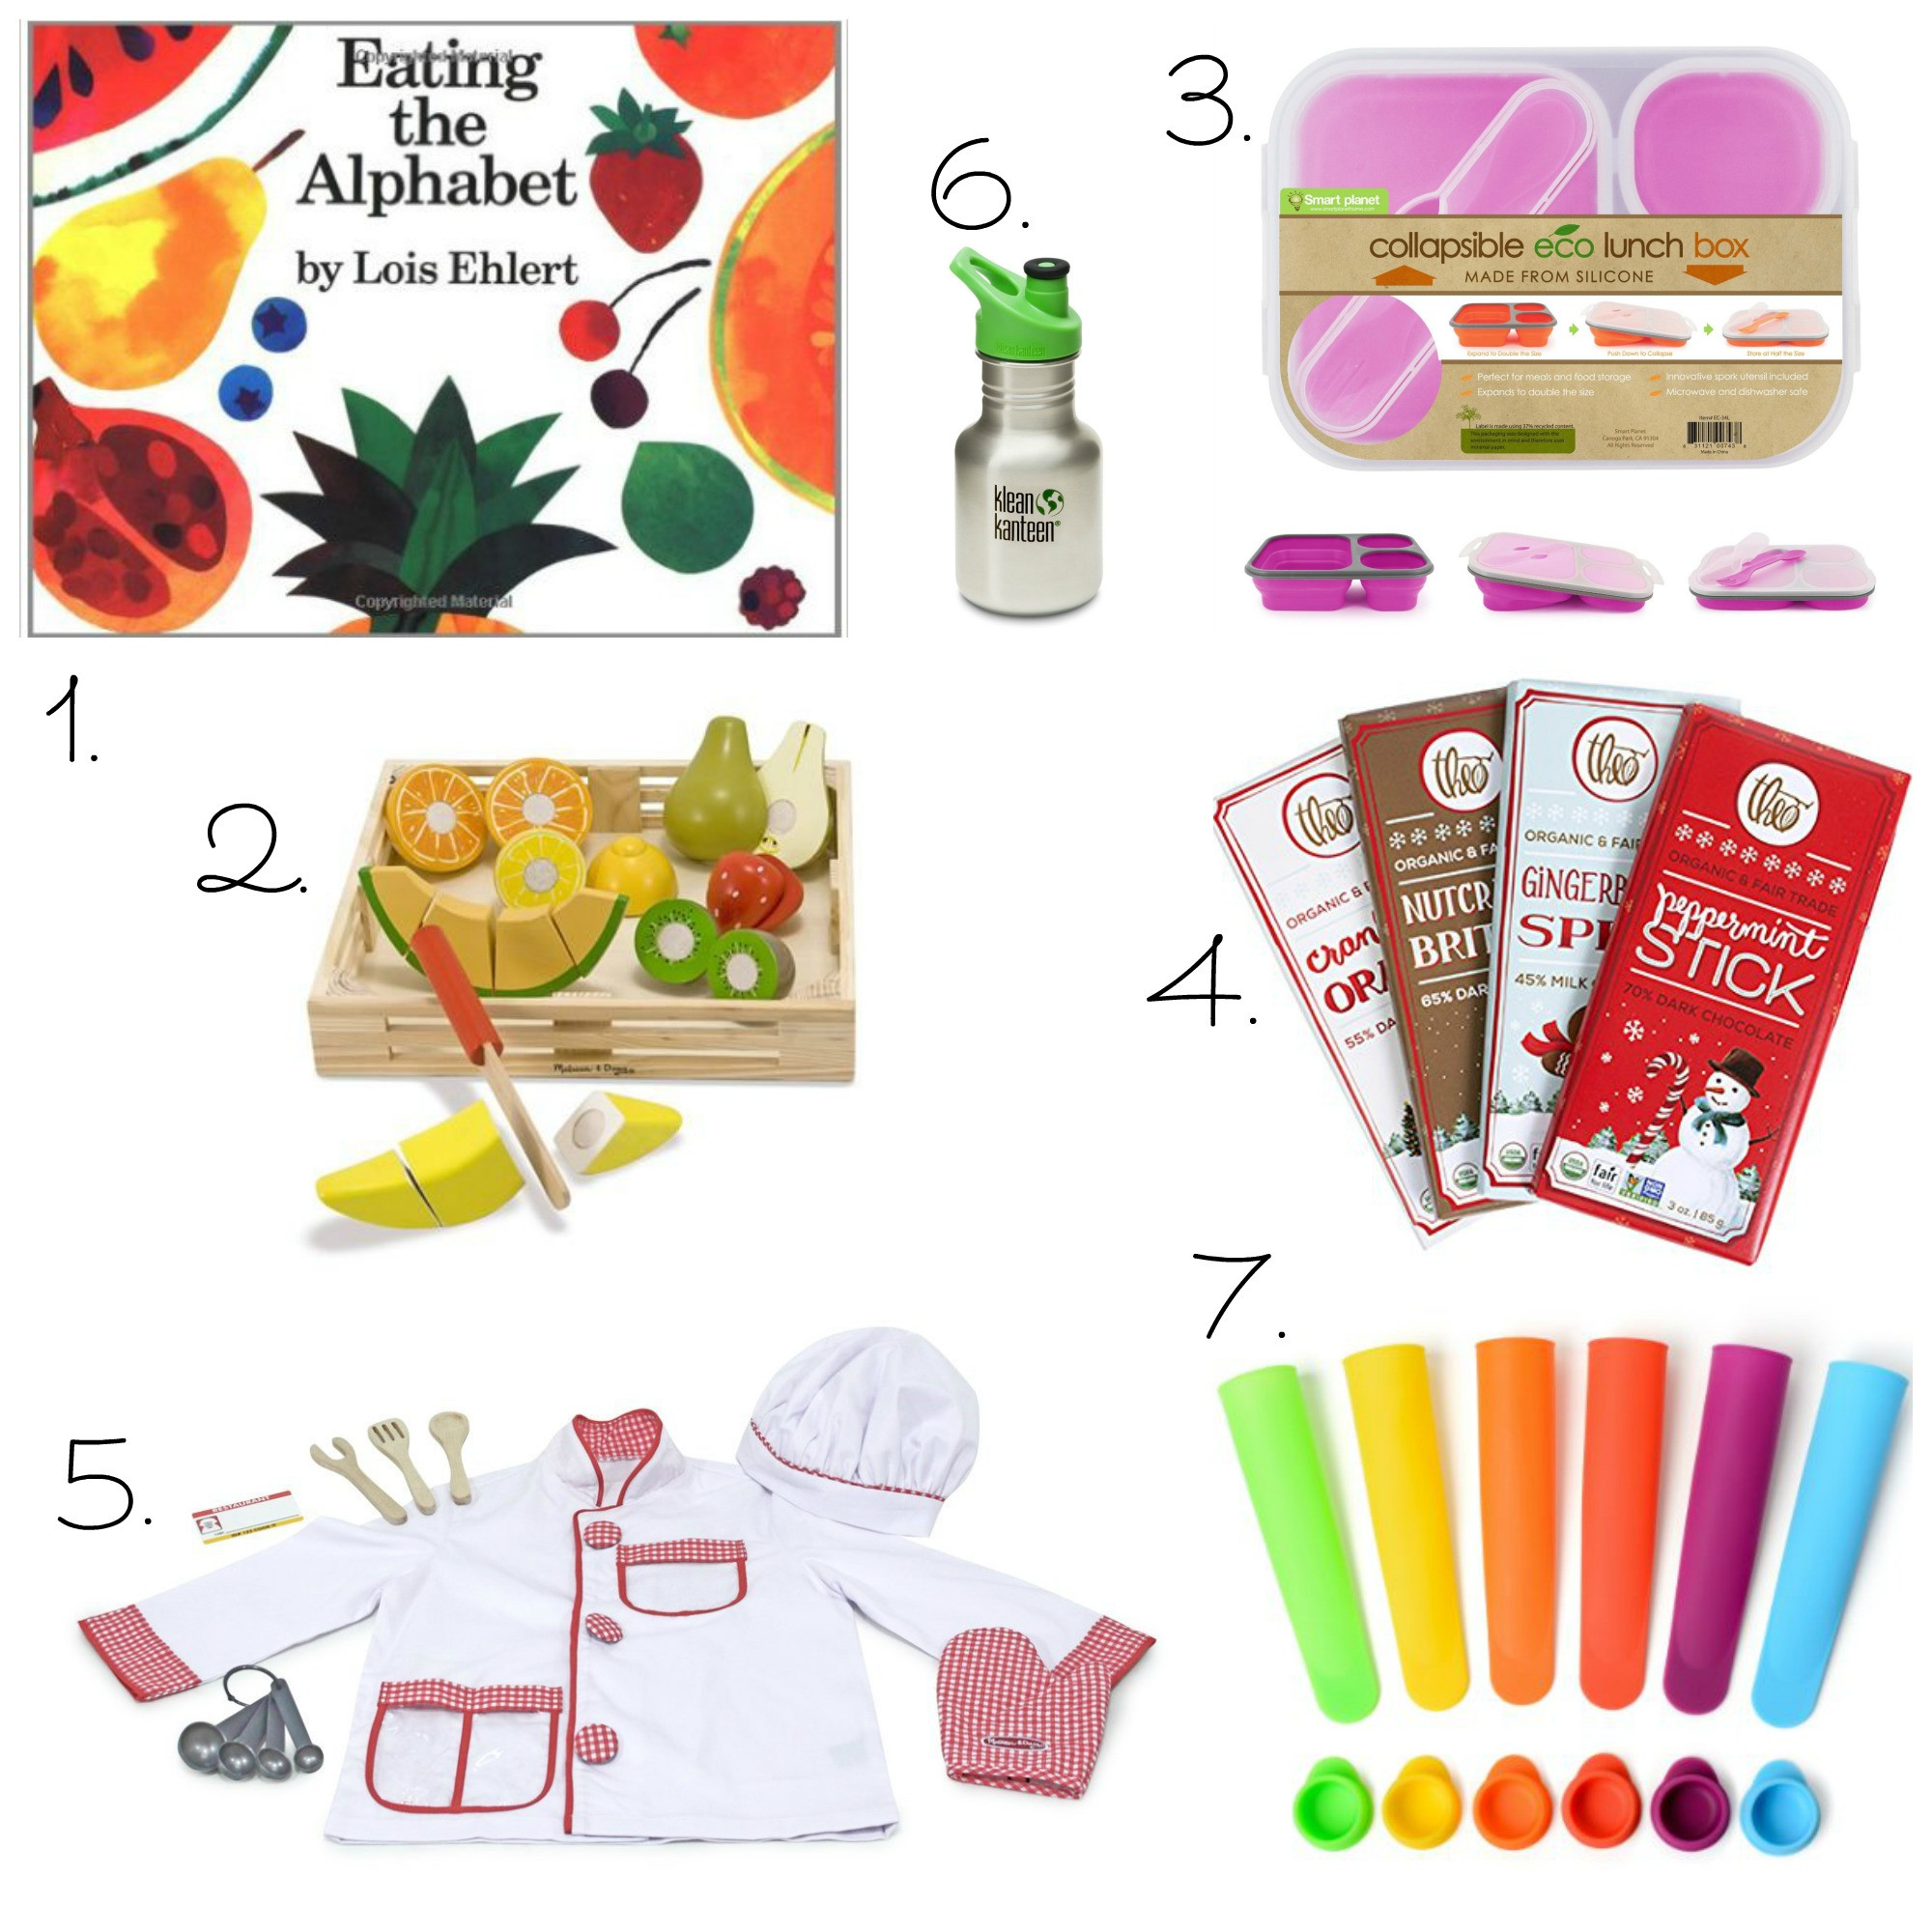 Gift Ideas For Children  Small Gift Guide Ideas for Her Him and Kids The